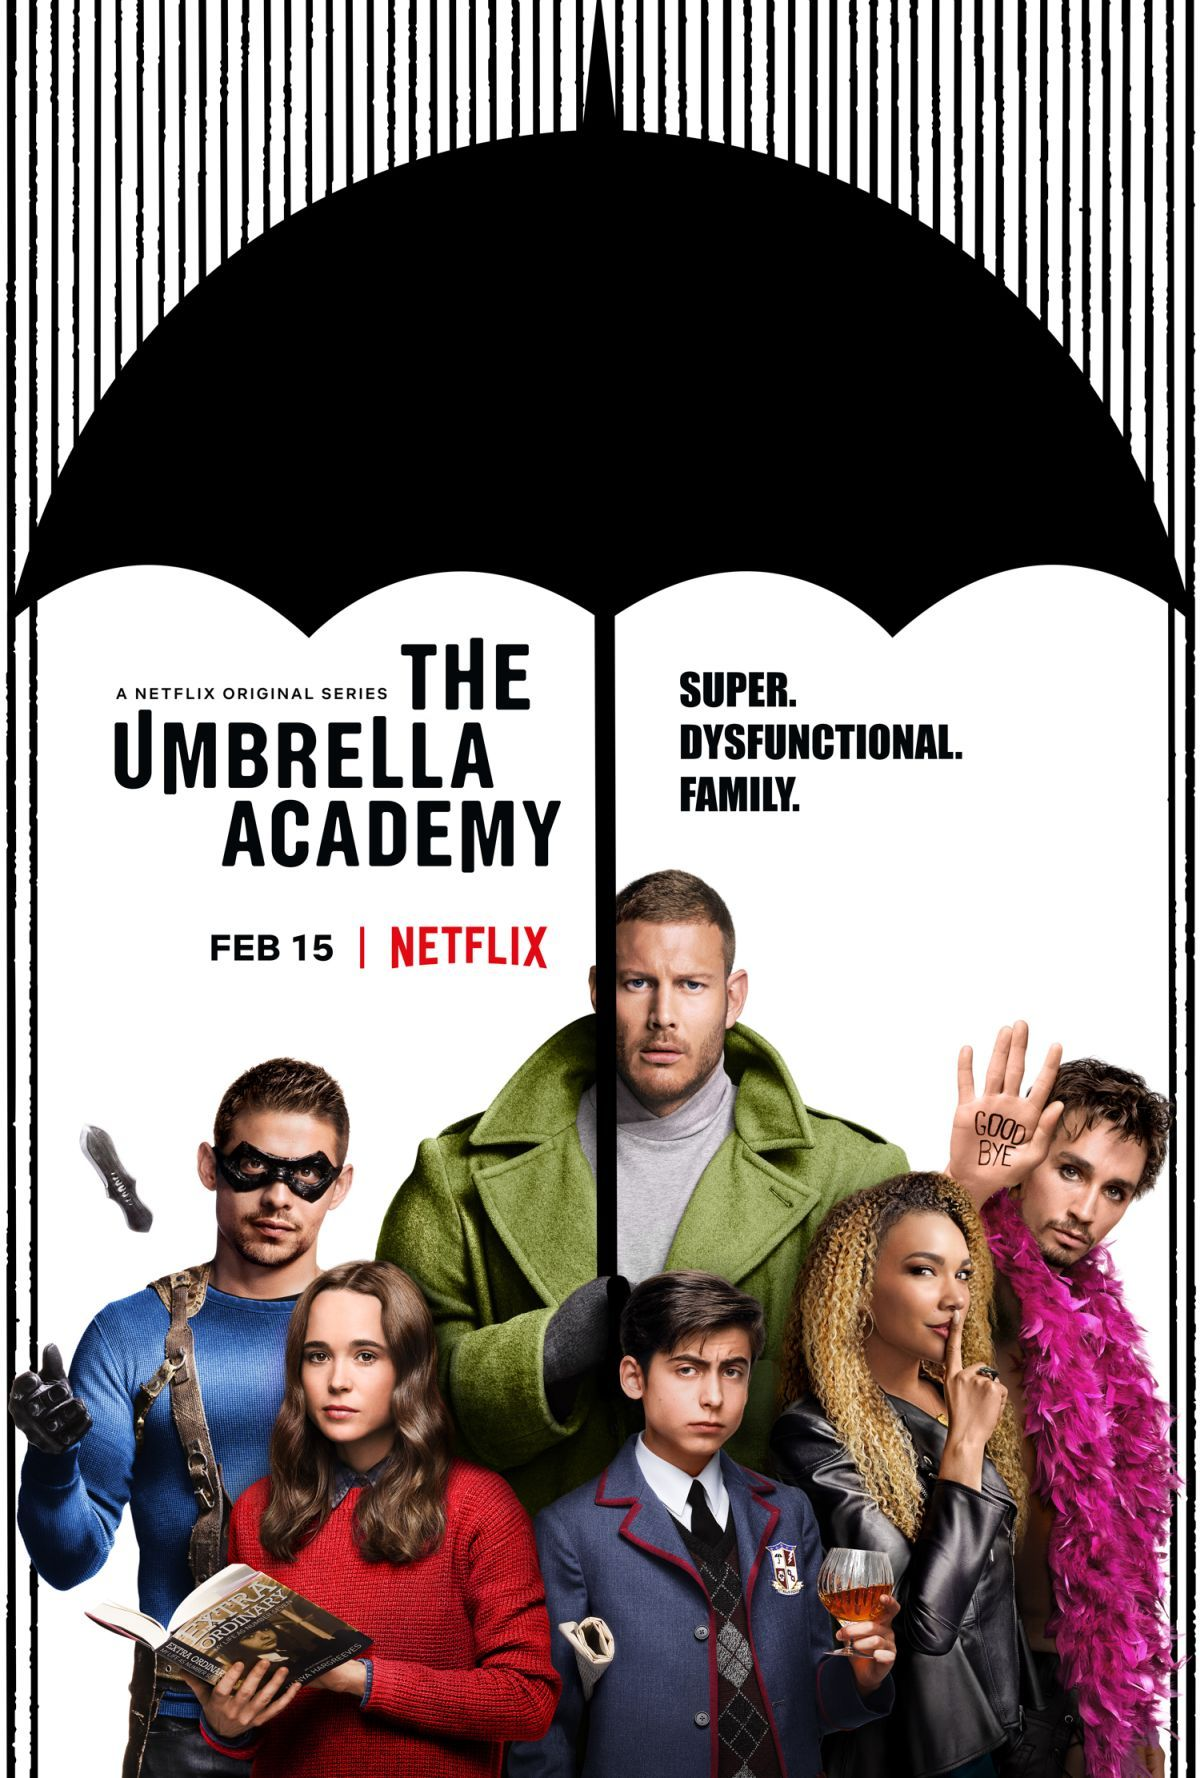 The Umbrella Academy S01 E04 Cut